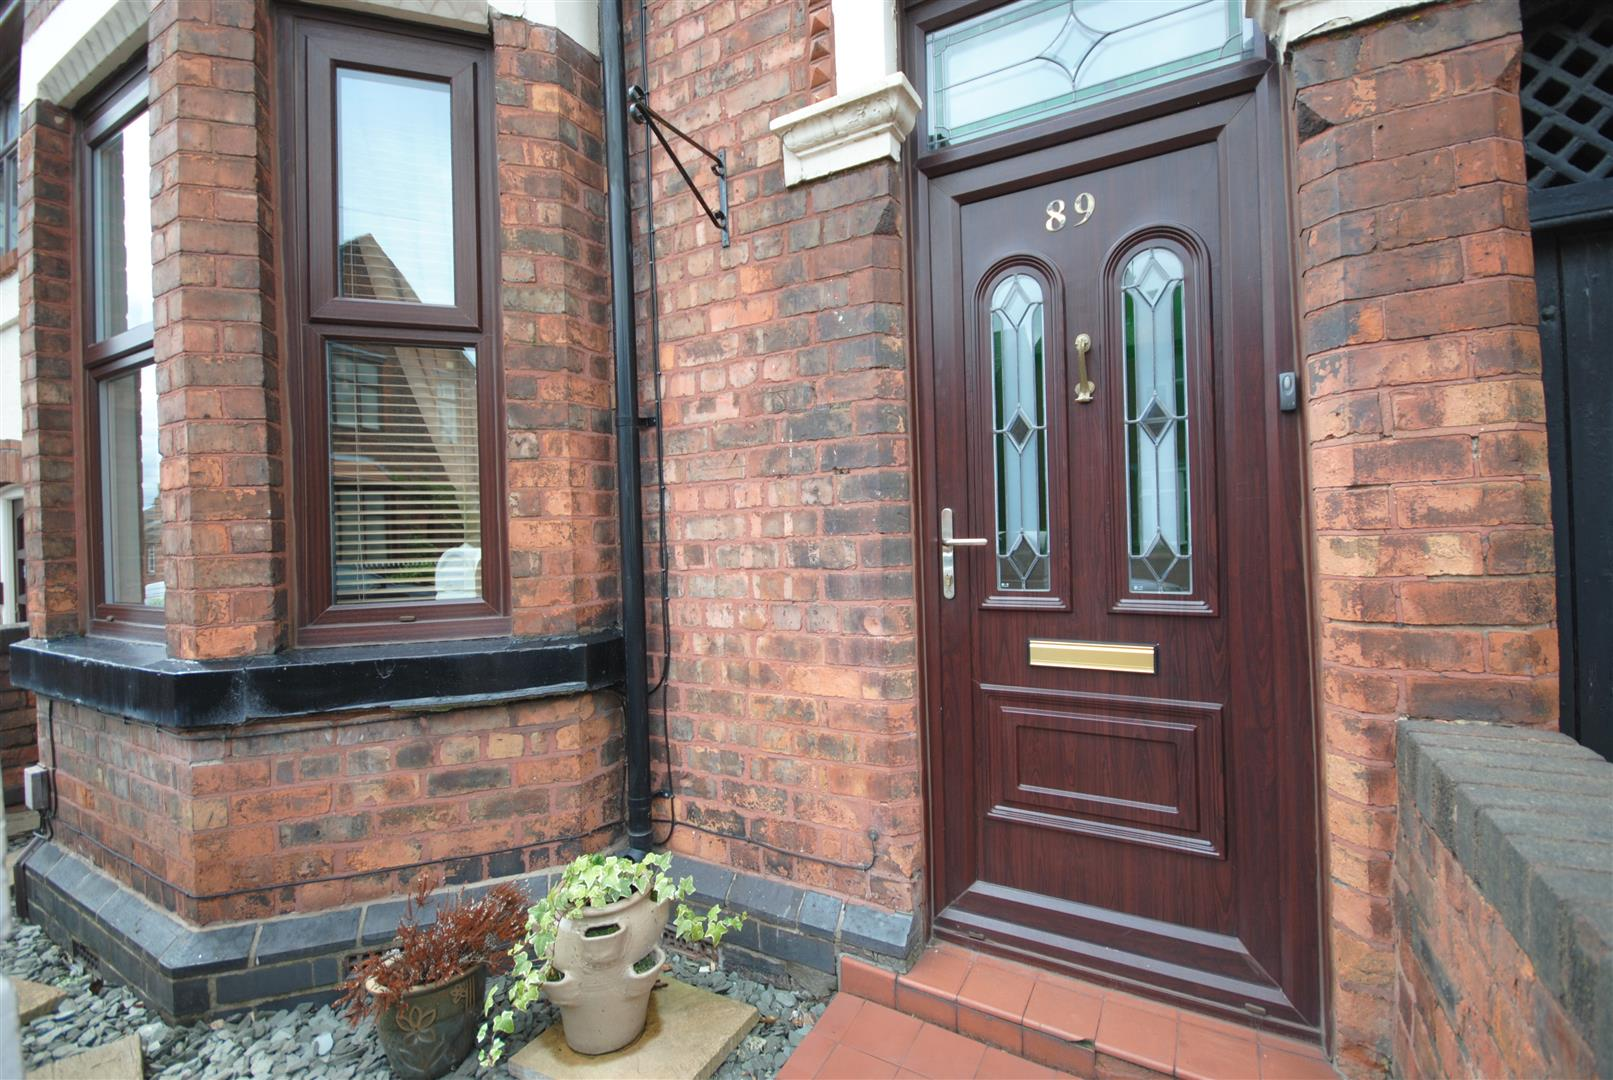 3 Bedrooms End Of Terrace House for sale in Wrightington Street, Swinley, Wigan